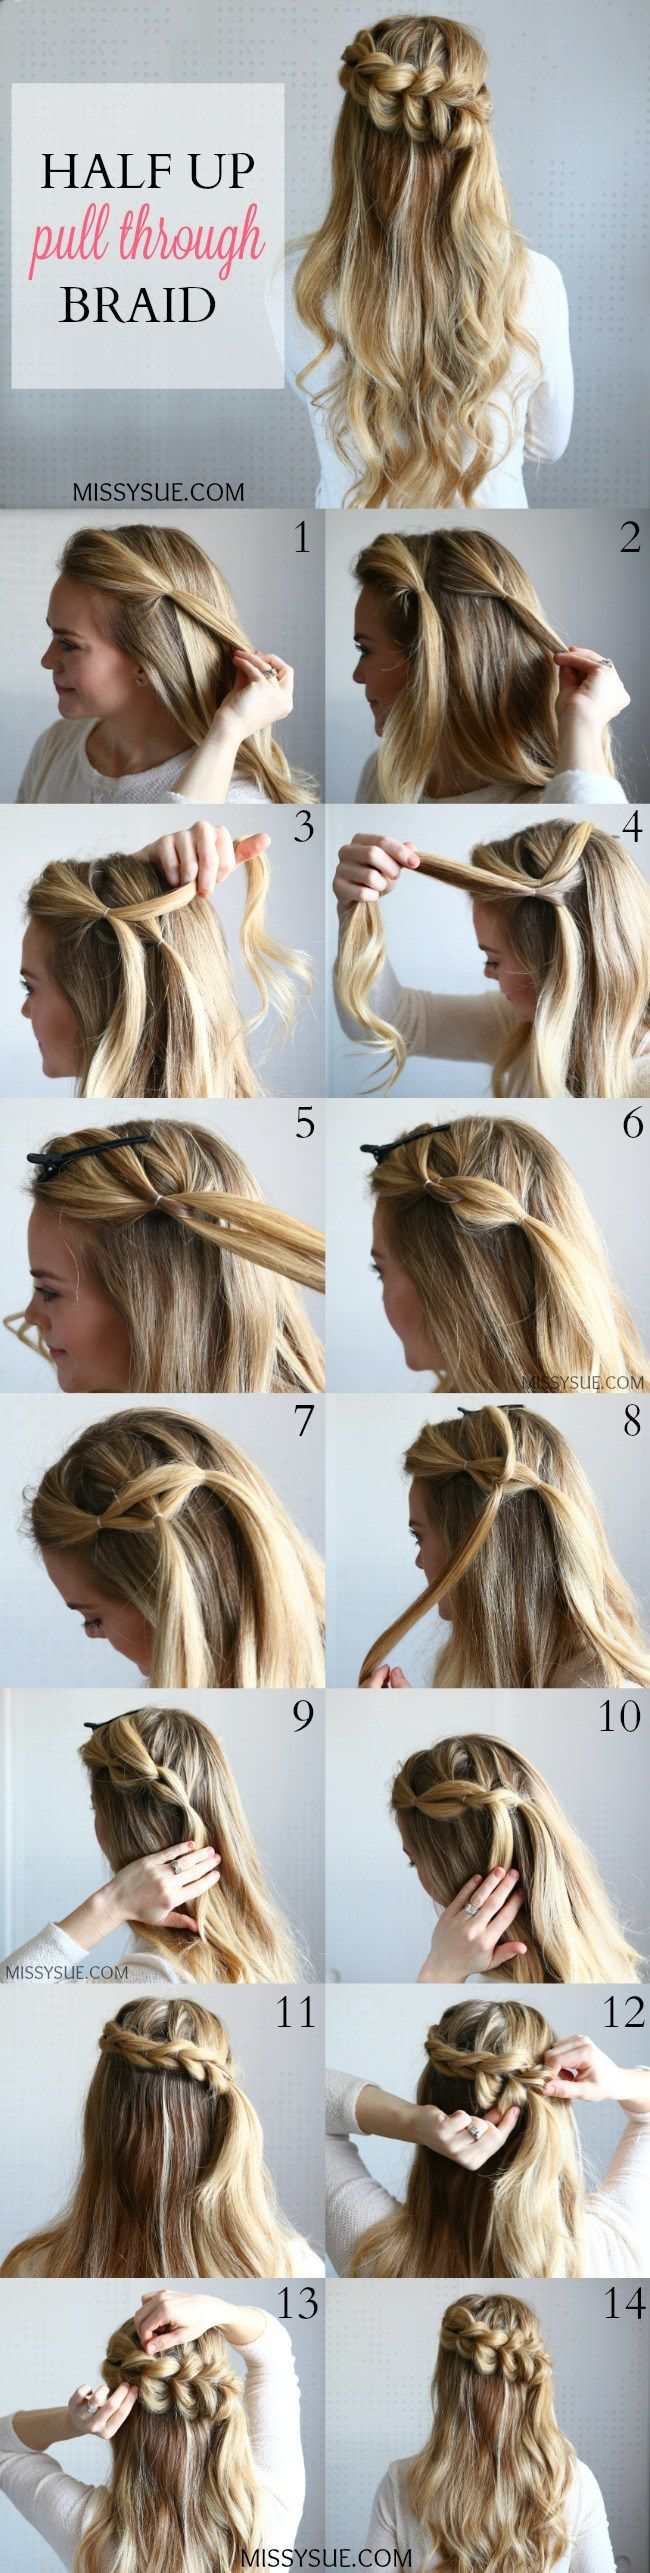 Half up pull through braid missy sue easy up hair pinterest